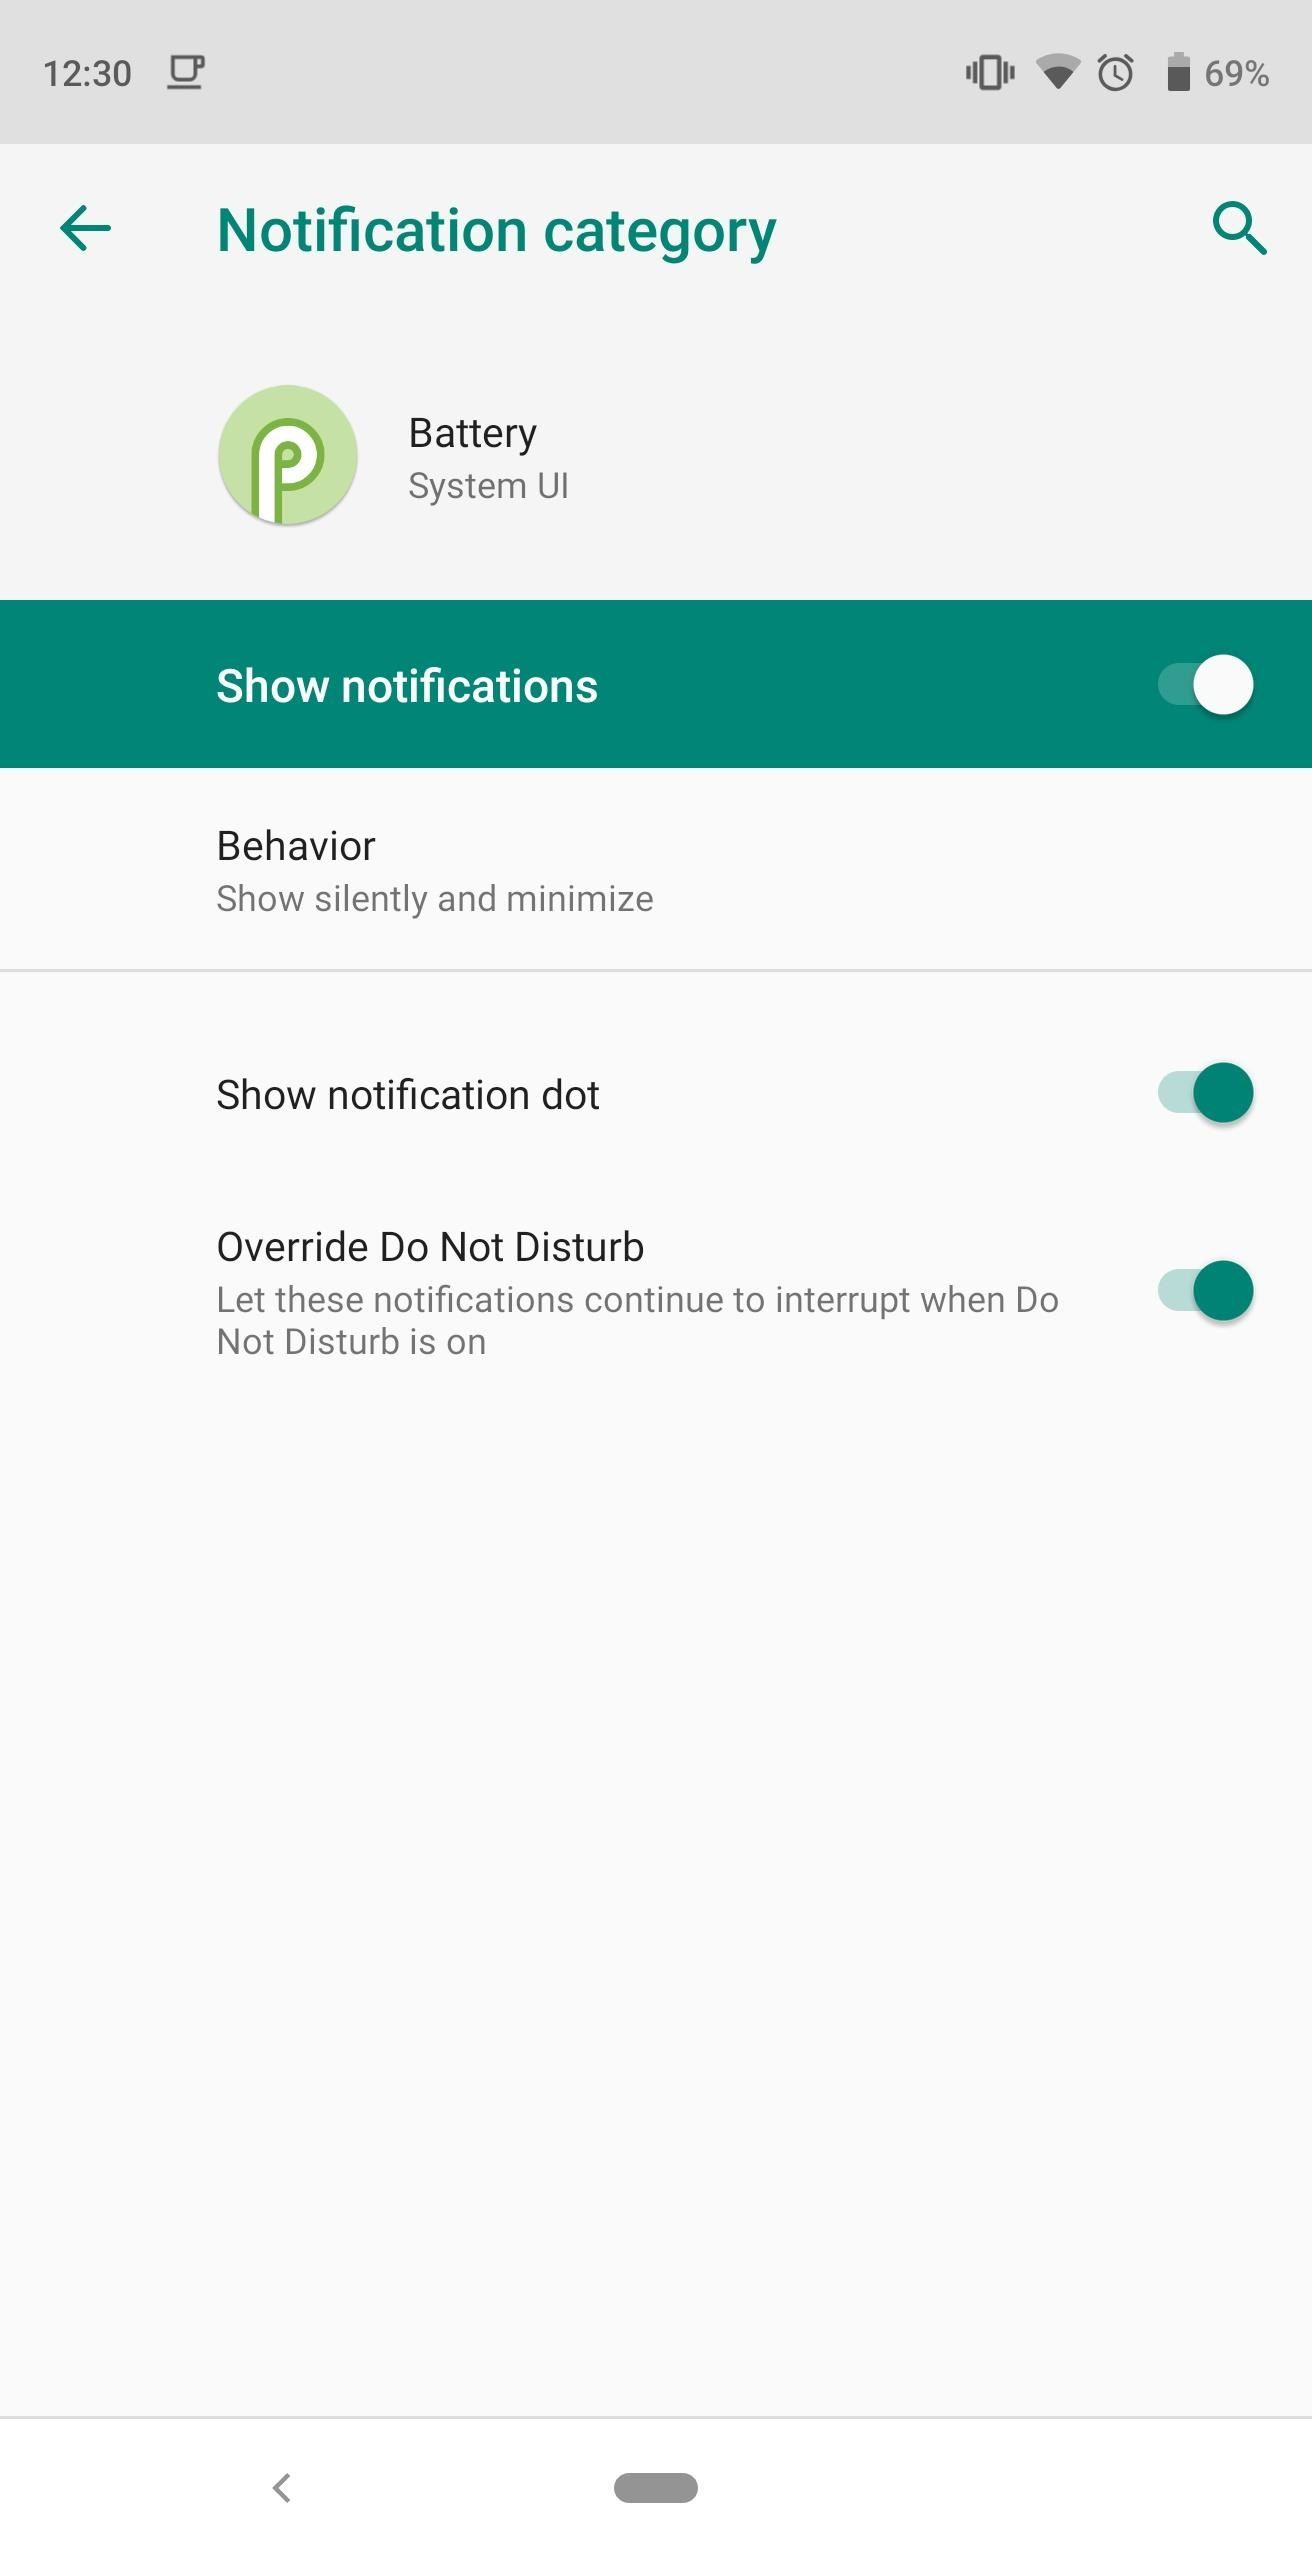 How to Turn Off the Low Battery Warning Sound & Notification in Android 9.0 Pie